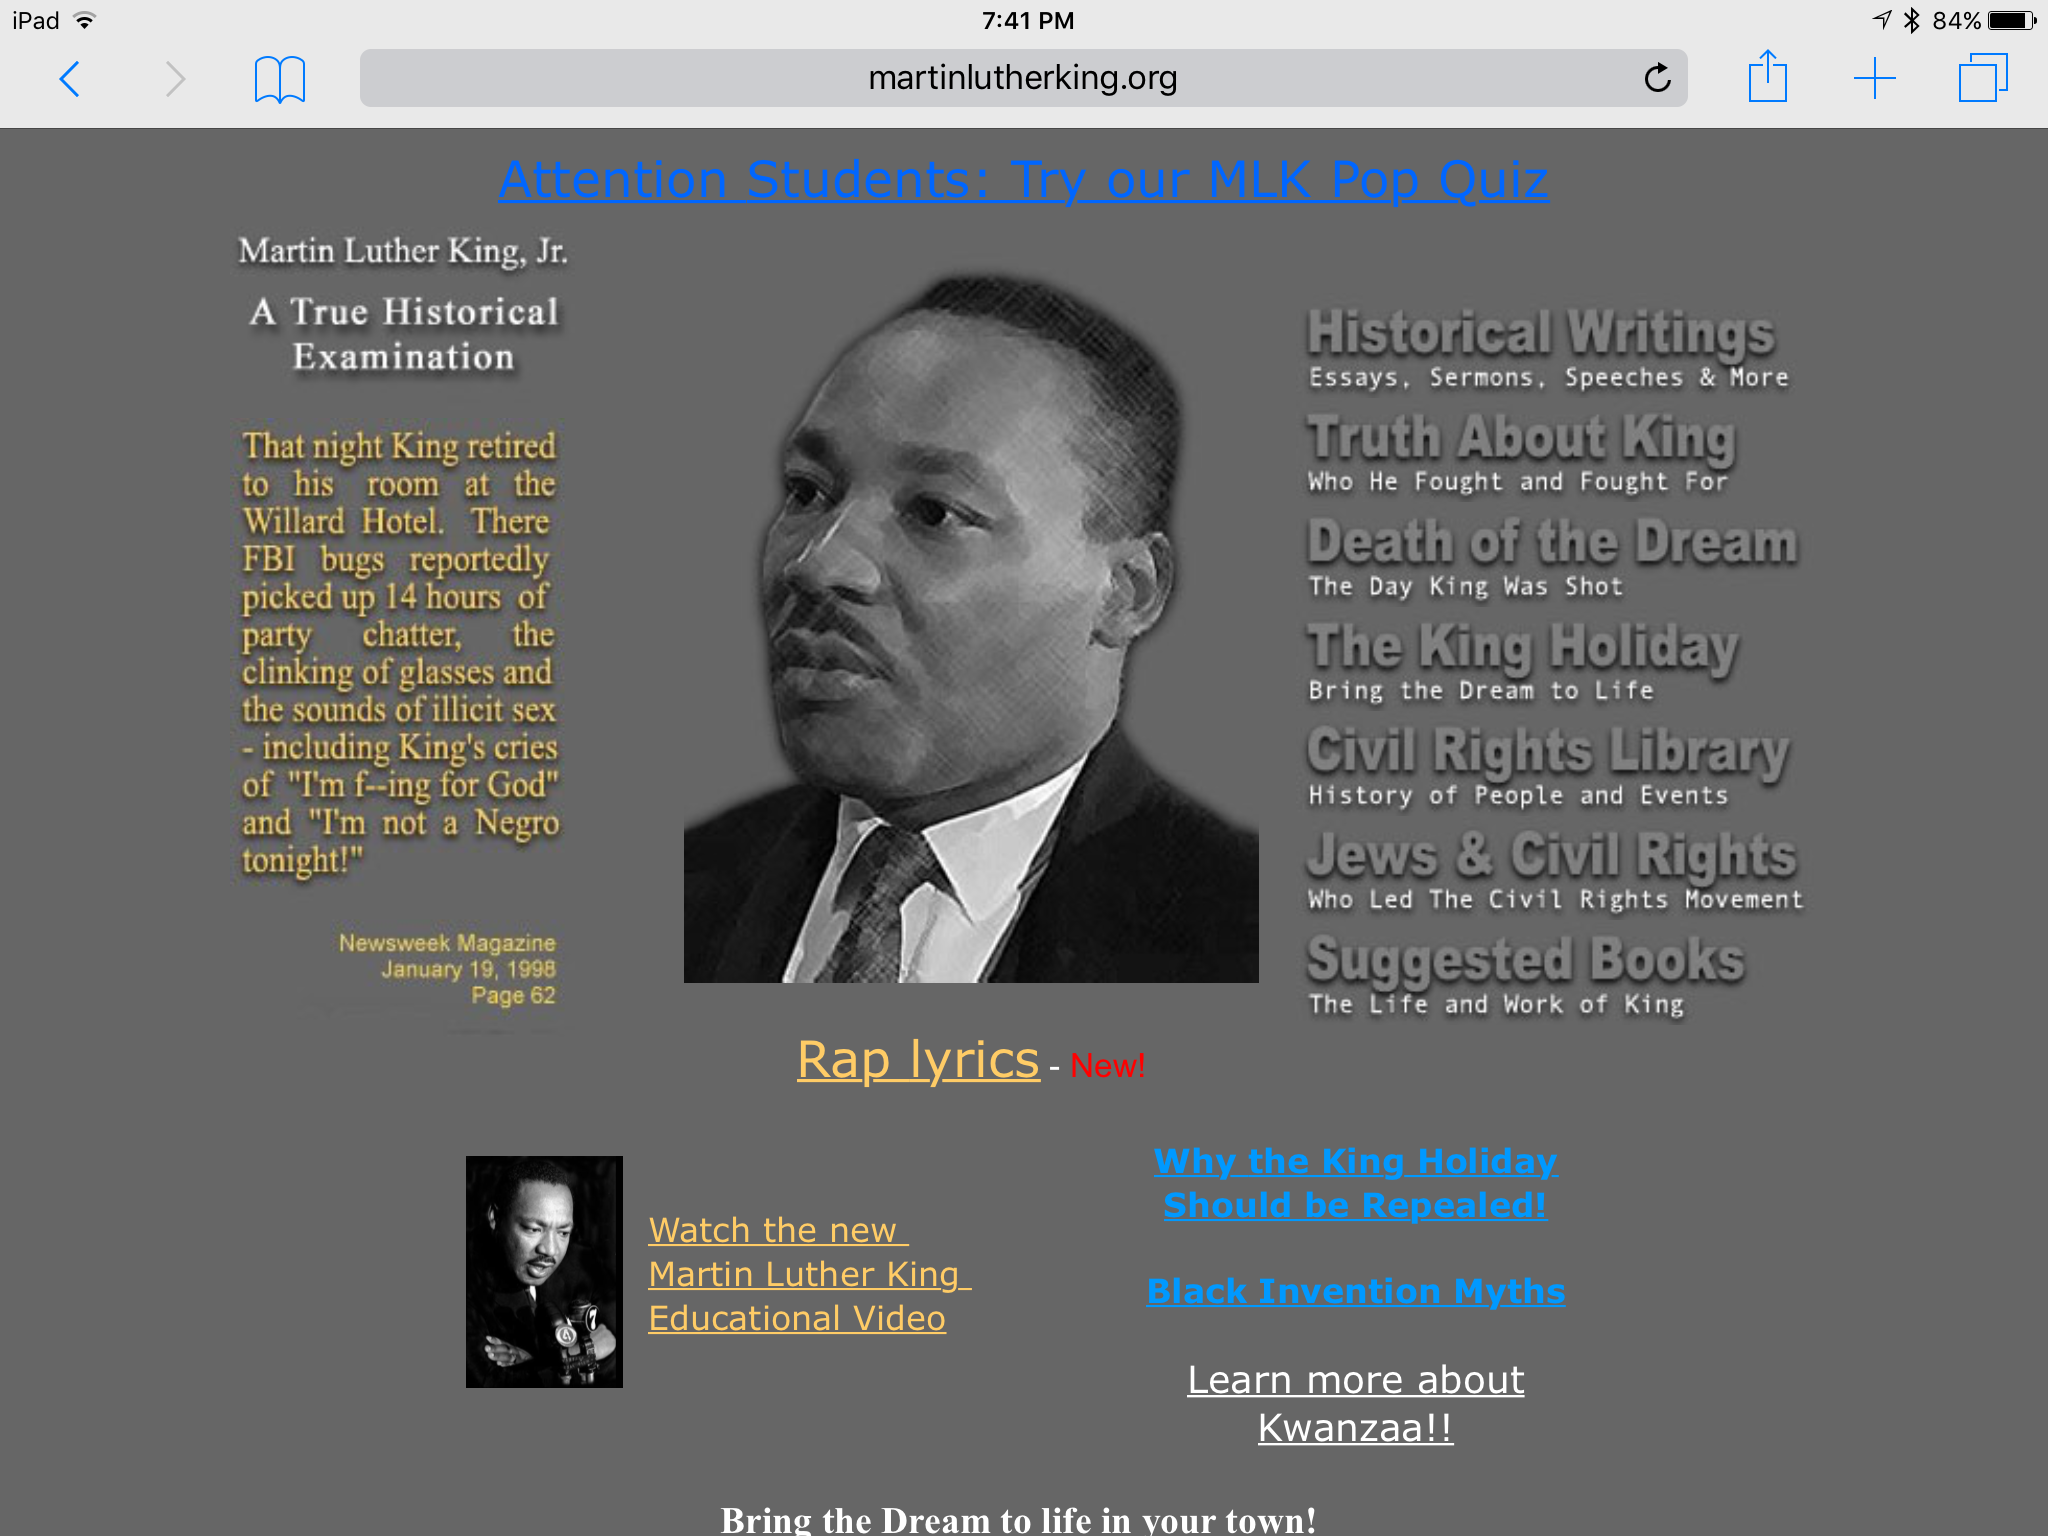 A screenshot fo martinlutherking.org